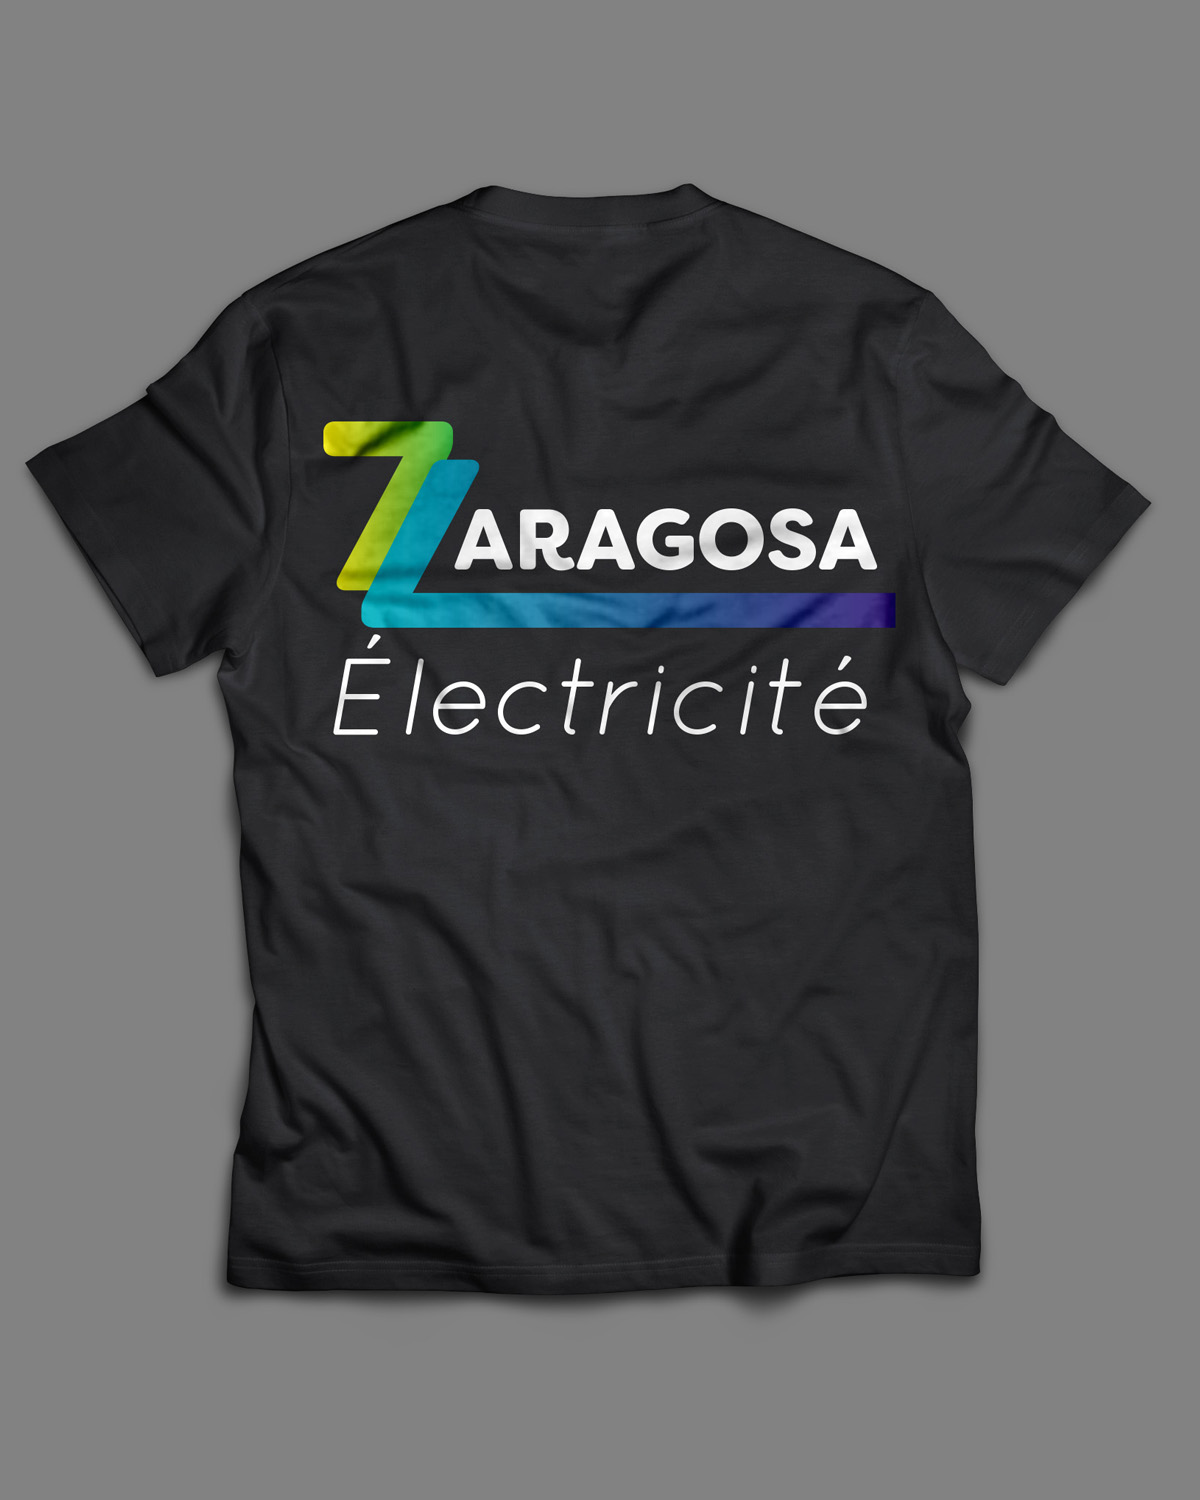 T-Shirt-zaragosa-electricite-by-publiyou